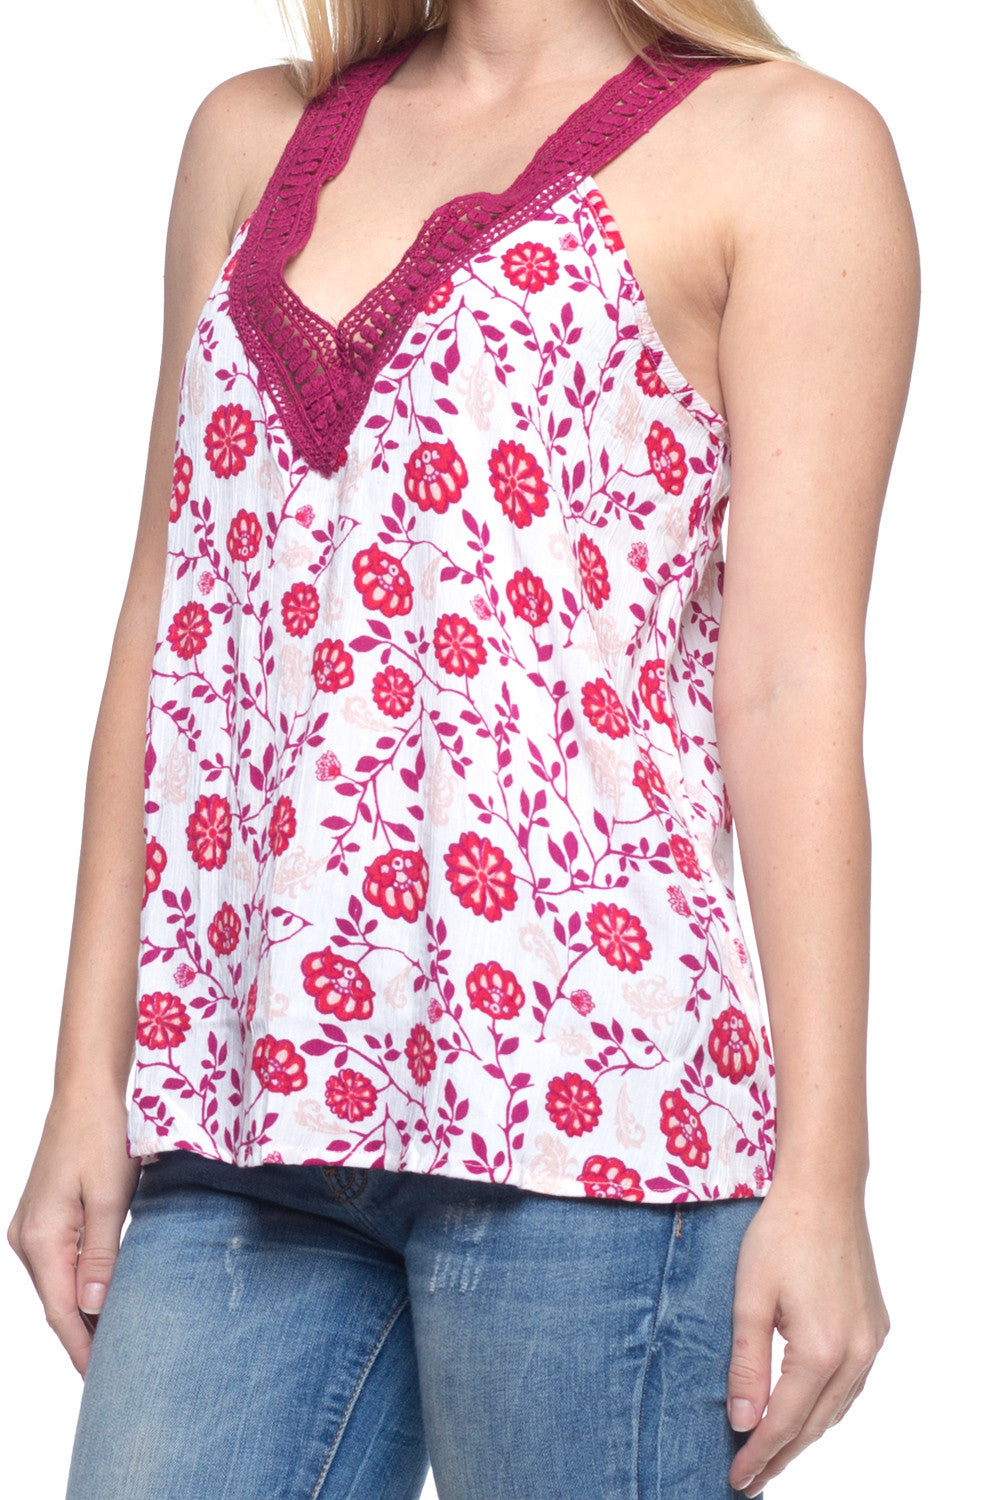 S/L Tank with V Neck Crochet Decoration